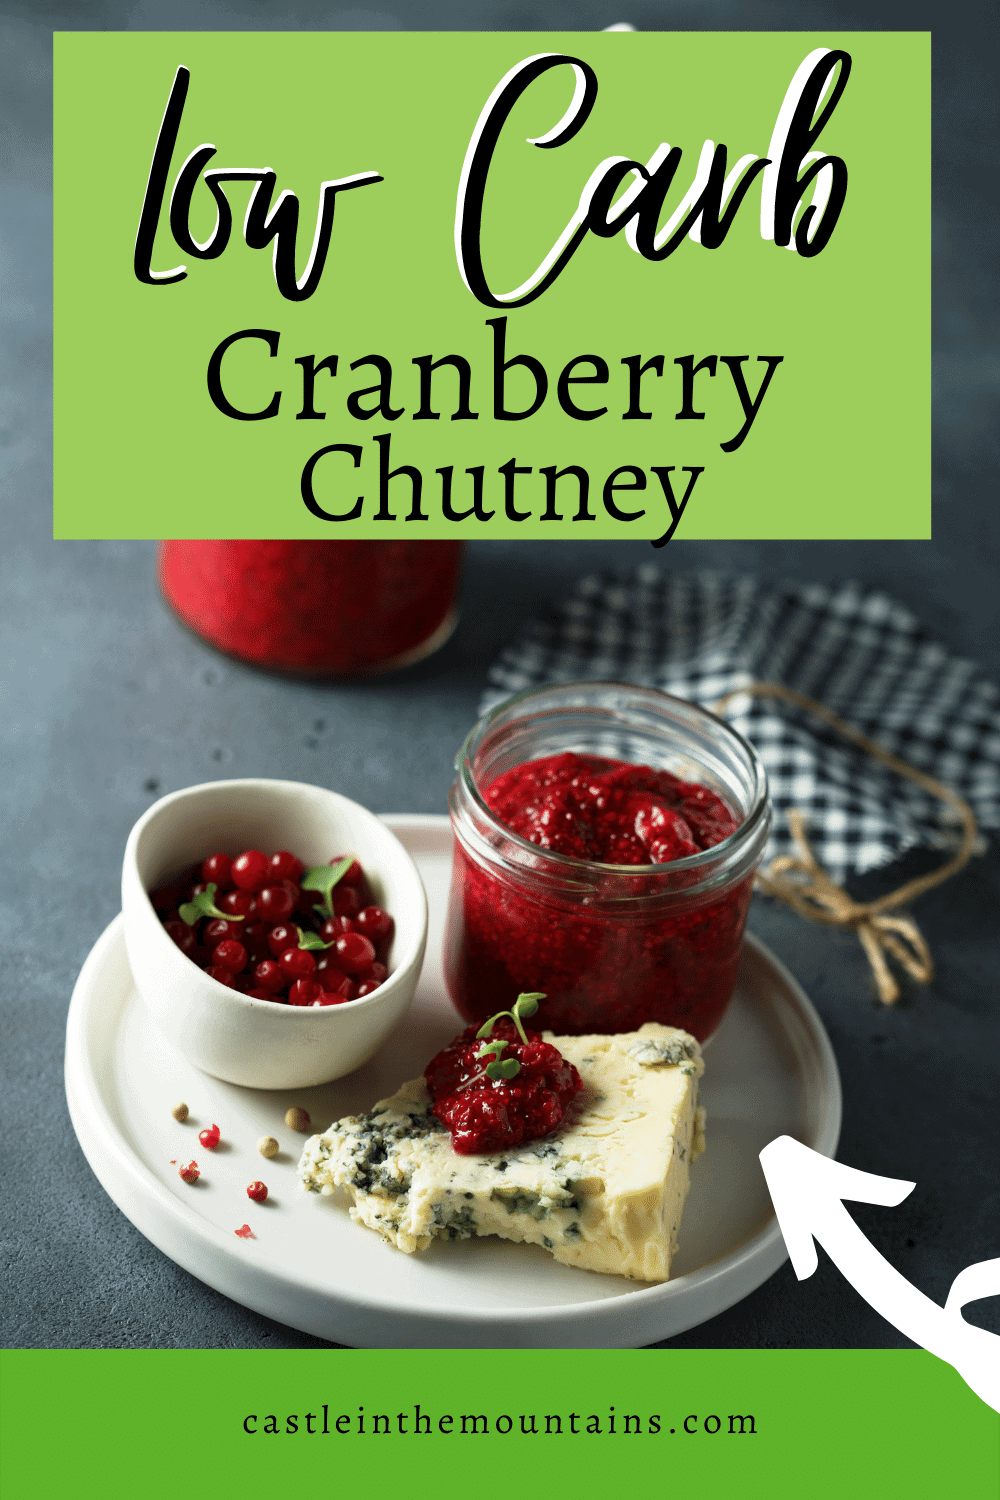 Cranberry Chutney- How to make a sweet and spicy chutney.